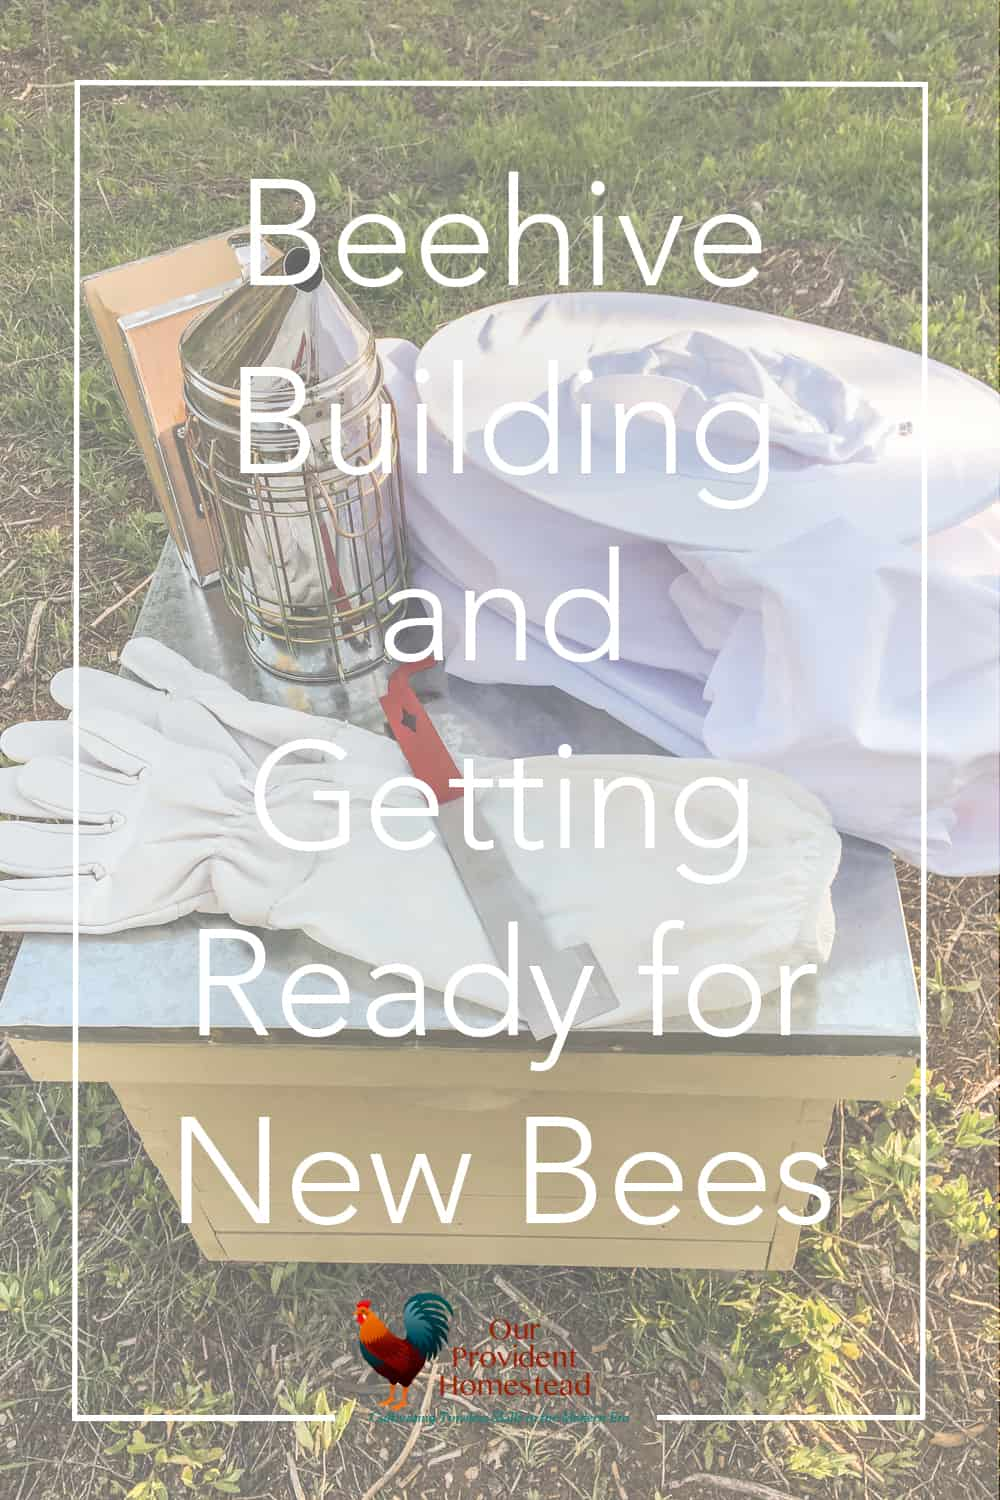 Are you interested in adding bees to your homestead? We are discussing beehives and what you need to get ready for bees on your property. #bees #beekeeping #homesteading #beginnerbeekeeping